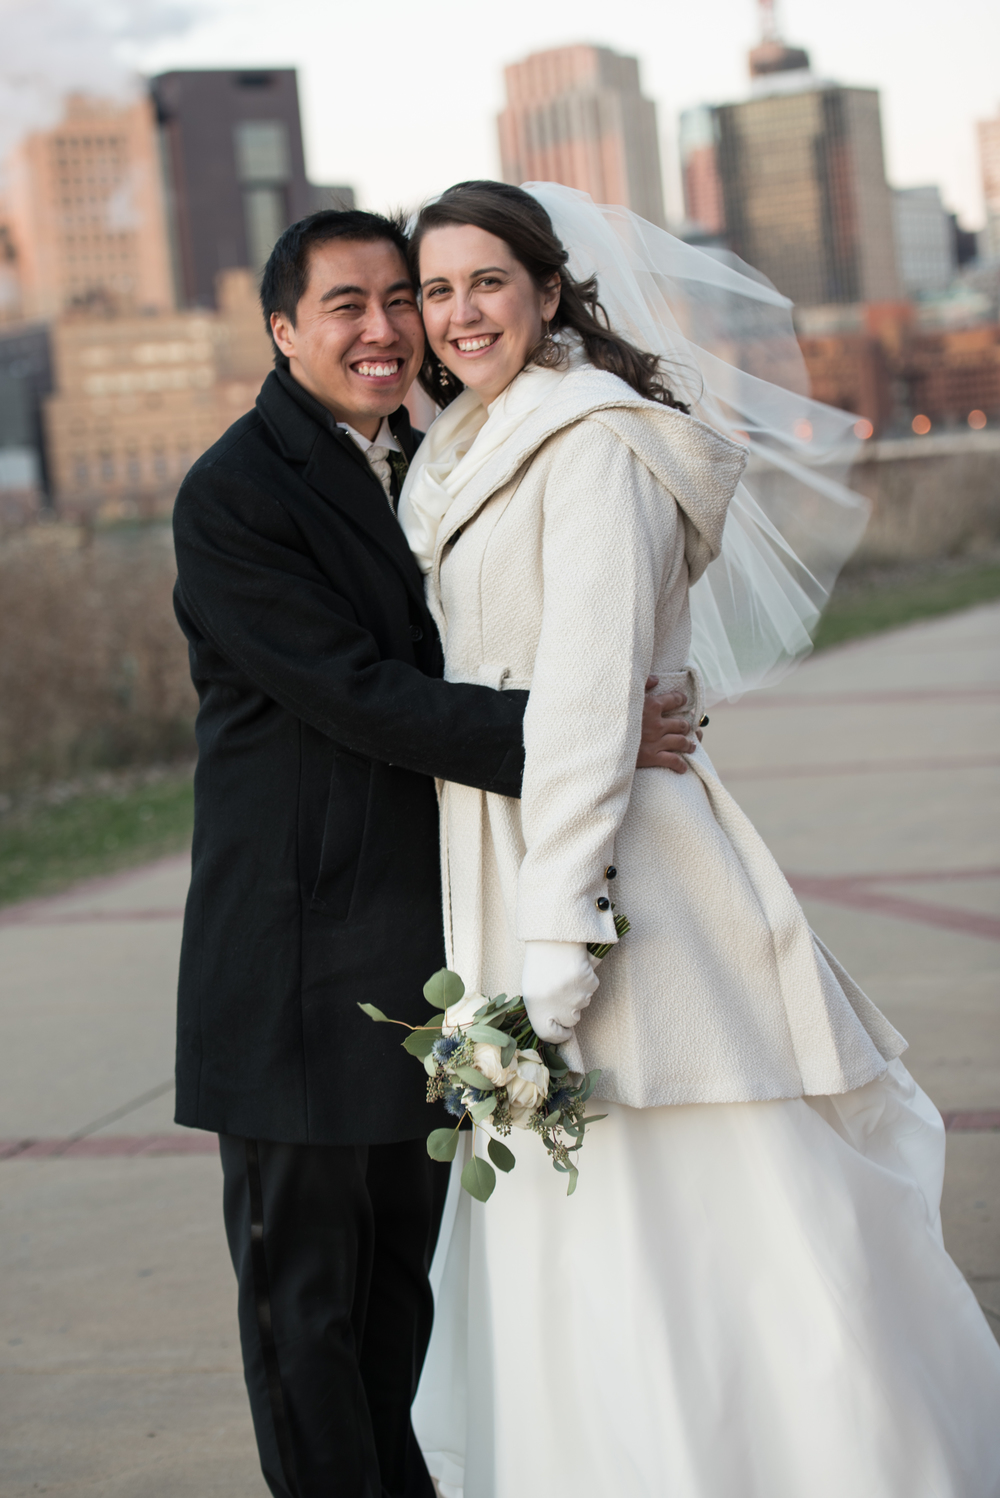 Michelle & David, St. Paul, MN